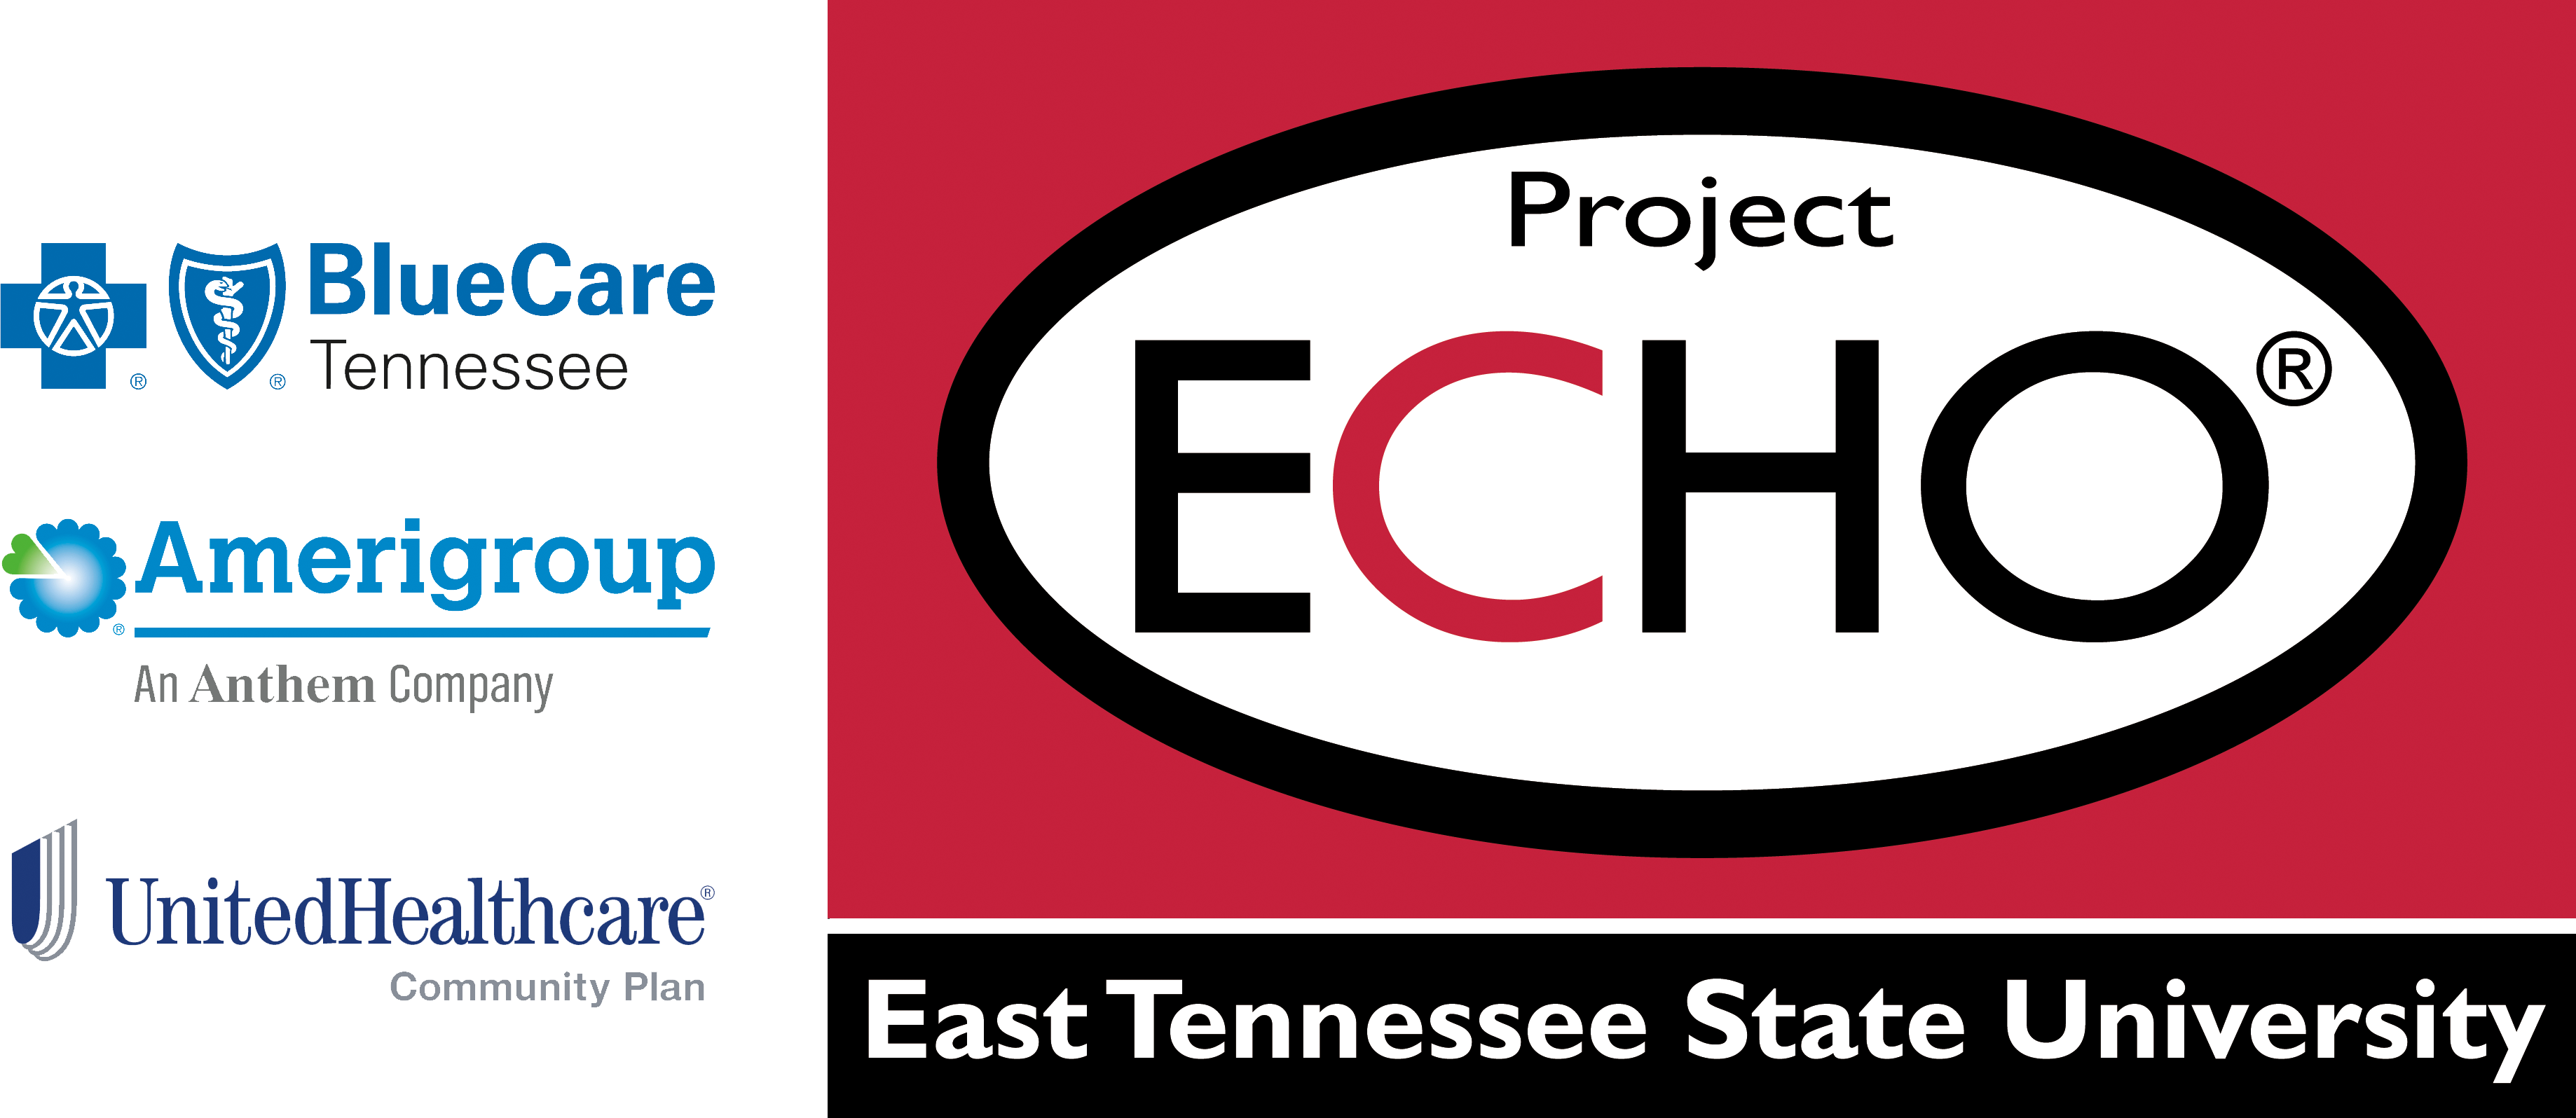 BMAT Project ECHO Banner